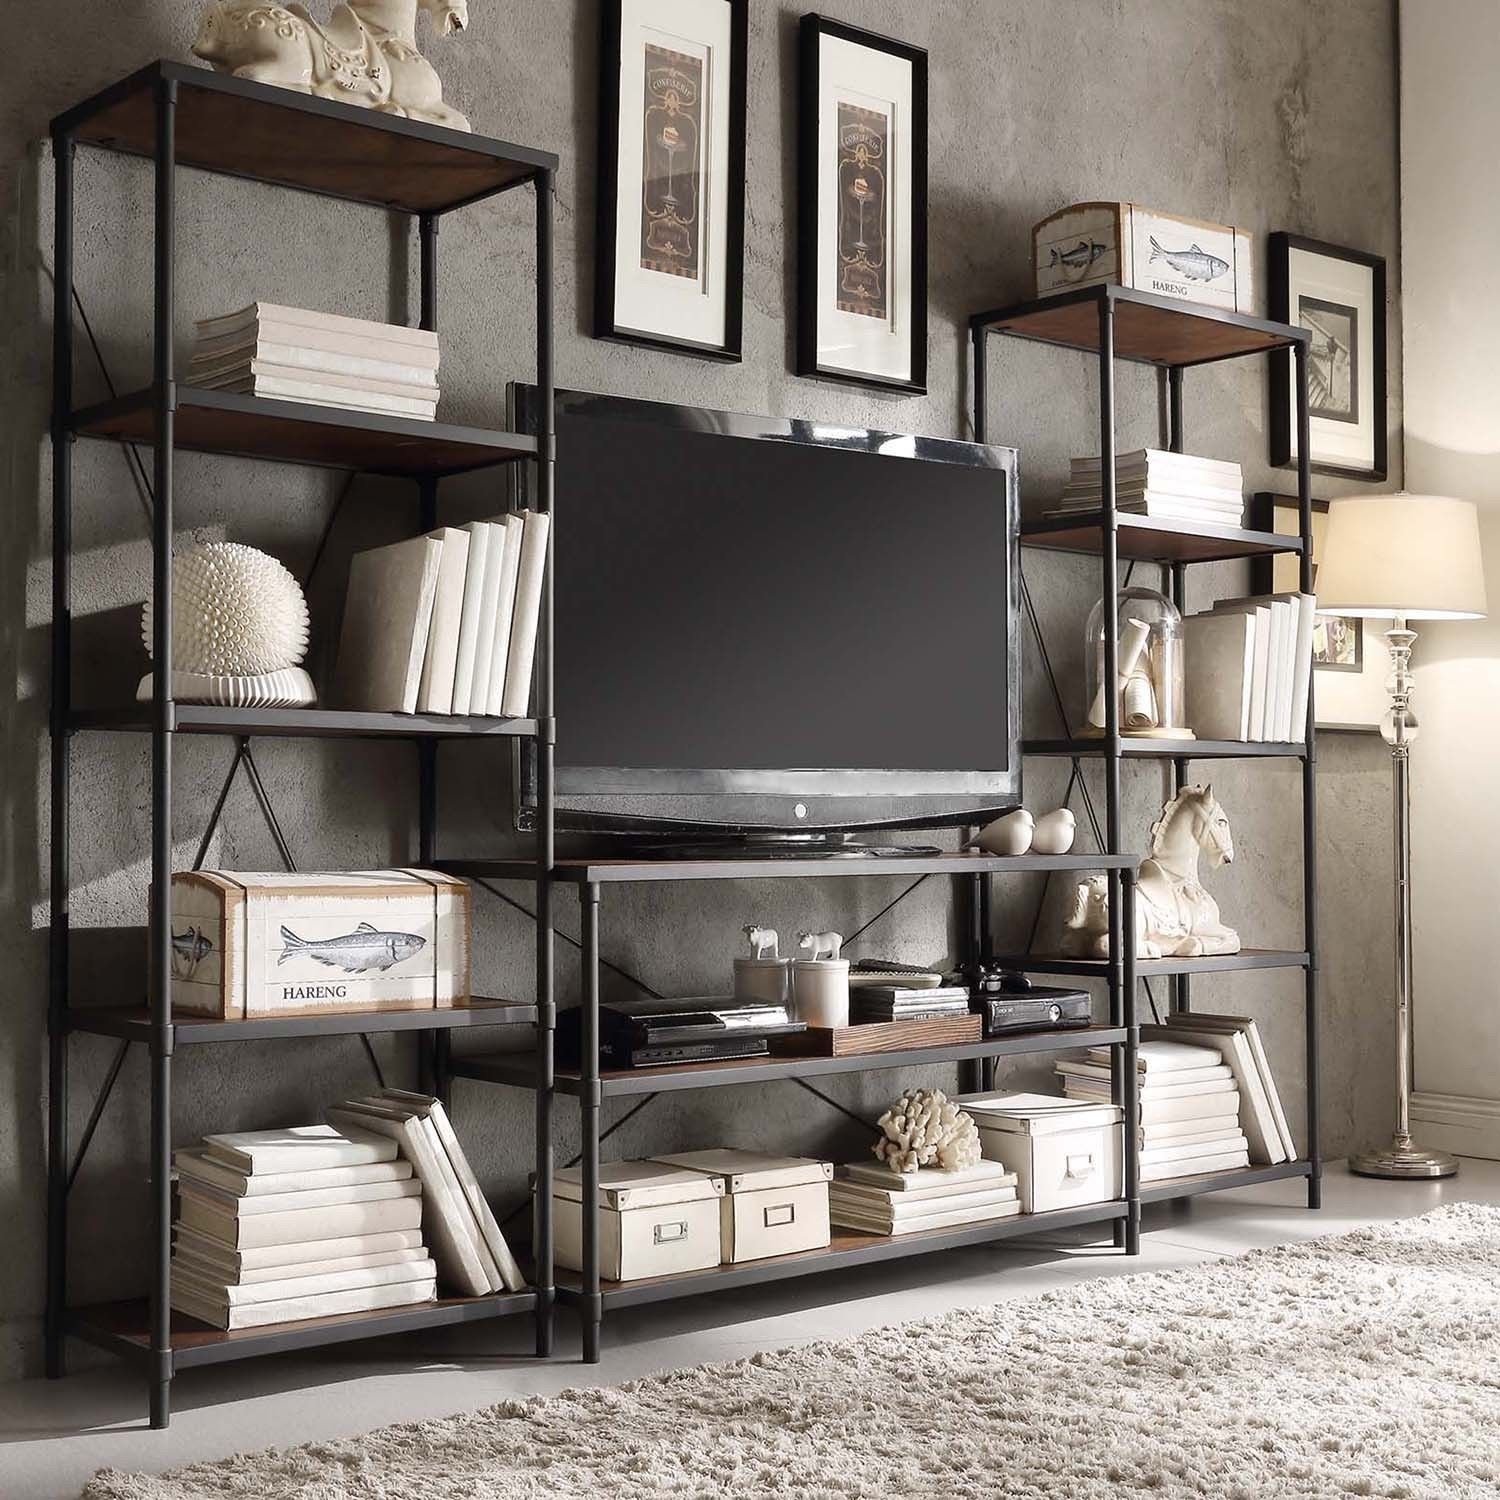 Inspire Q Harrison Industrial Rustic Pipe Frame Media Stand with Two  26-inch Towers